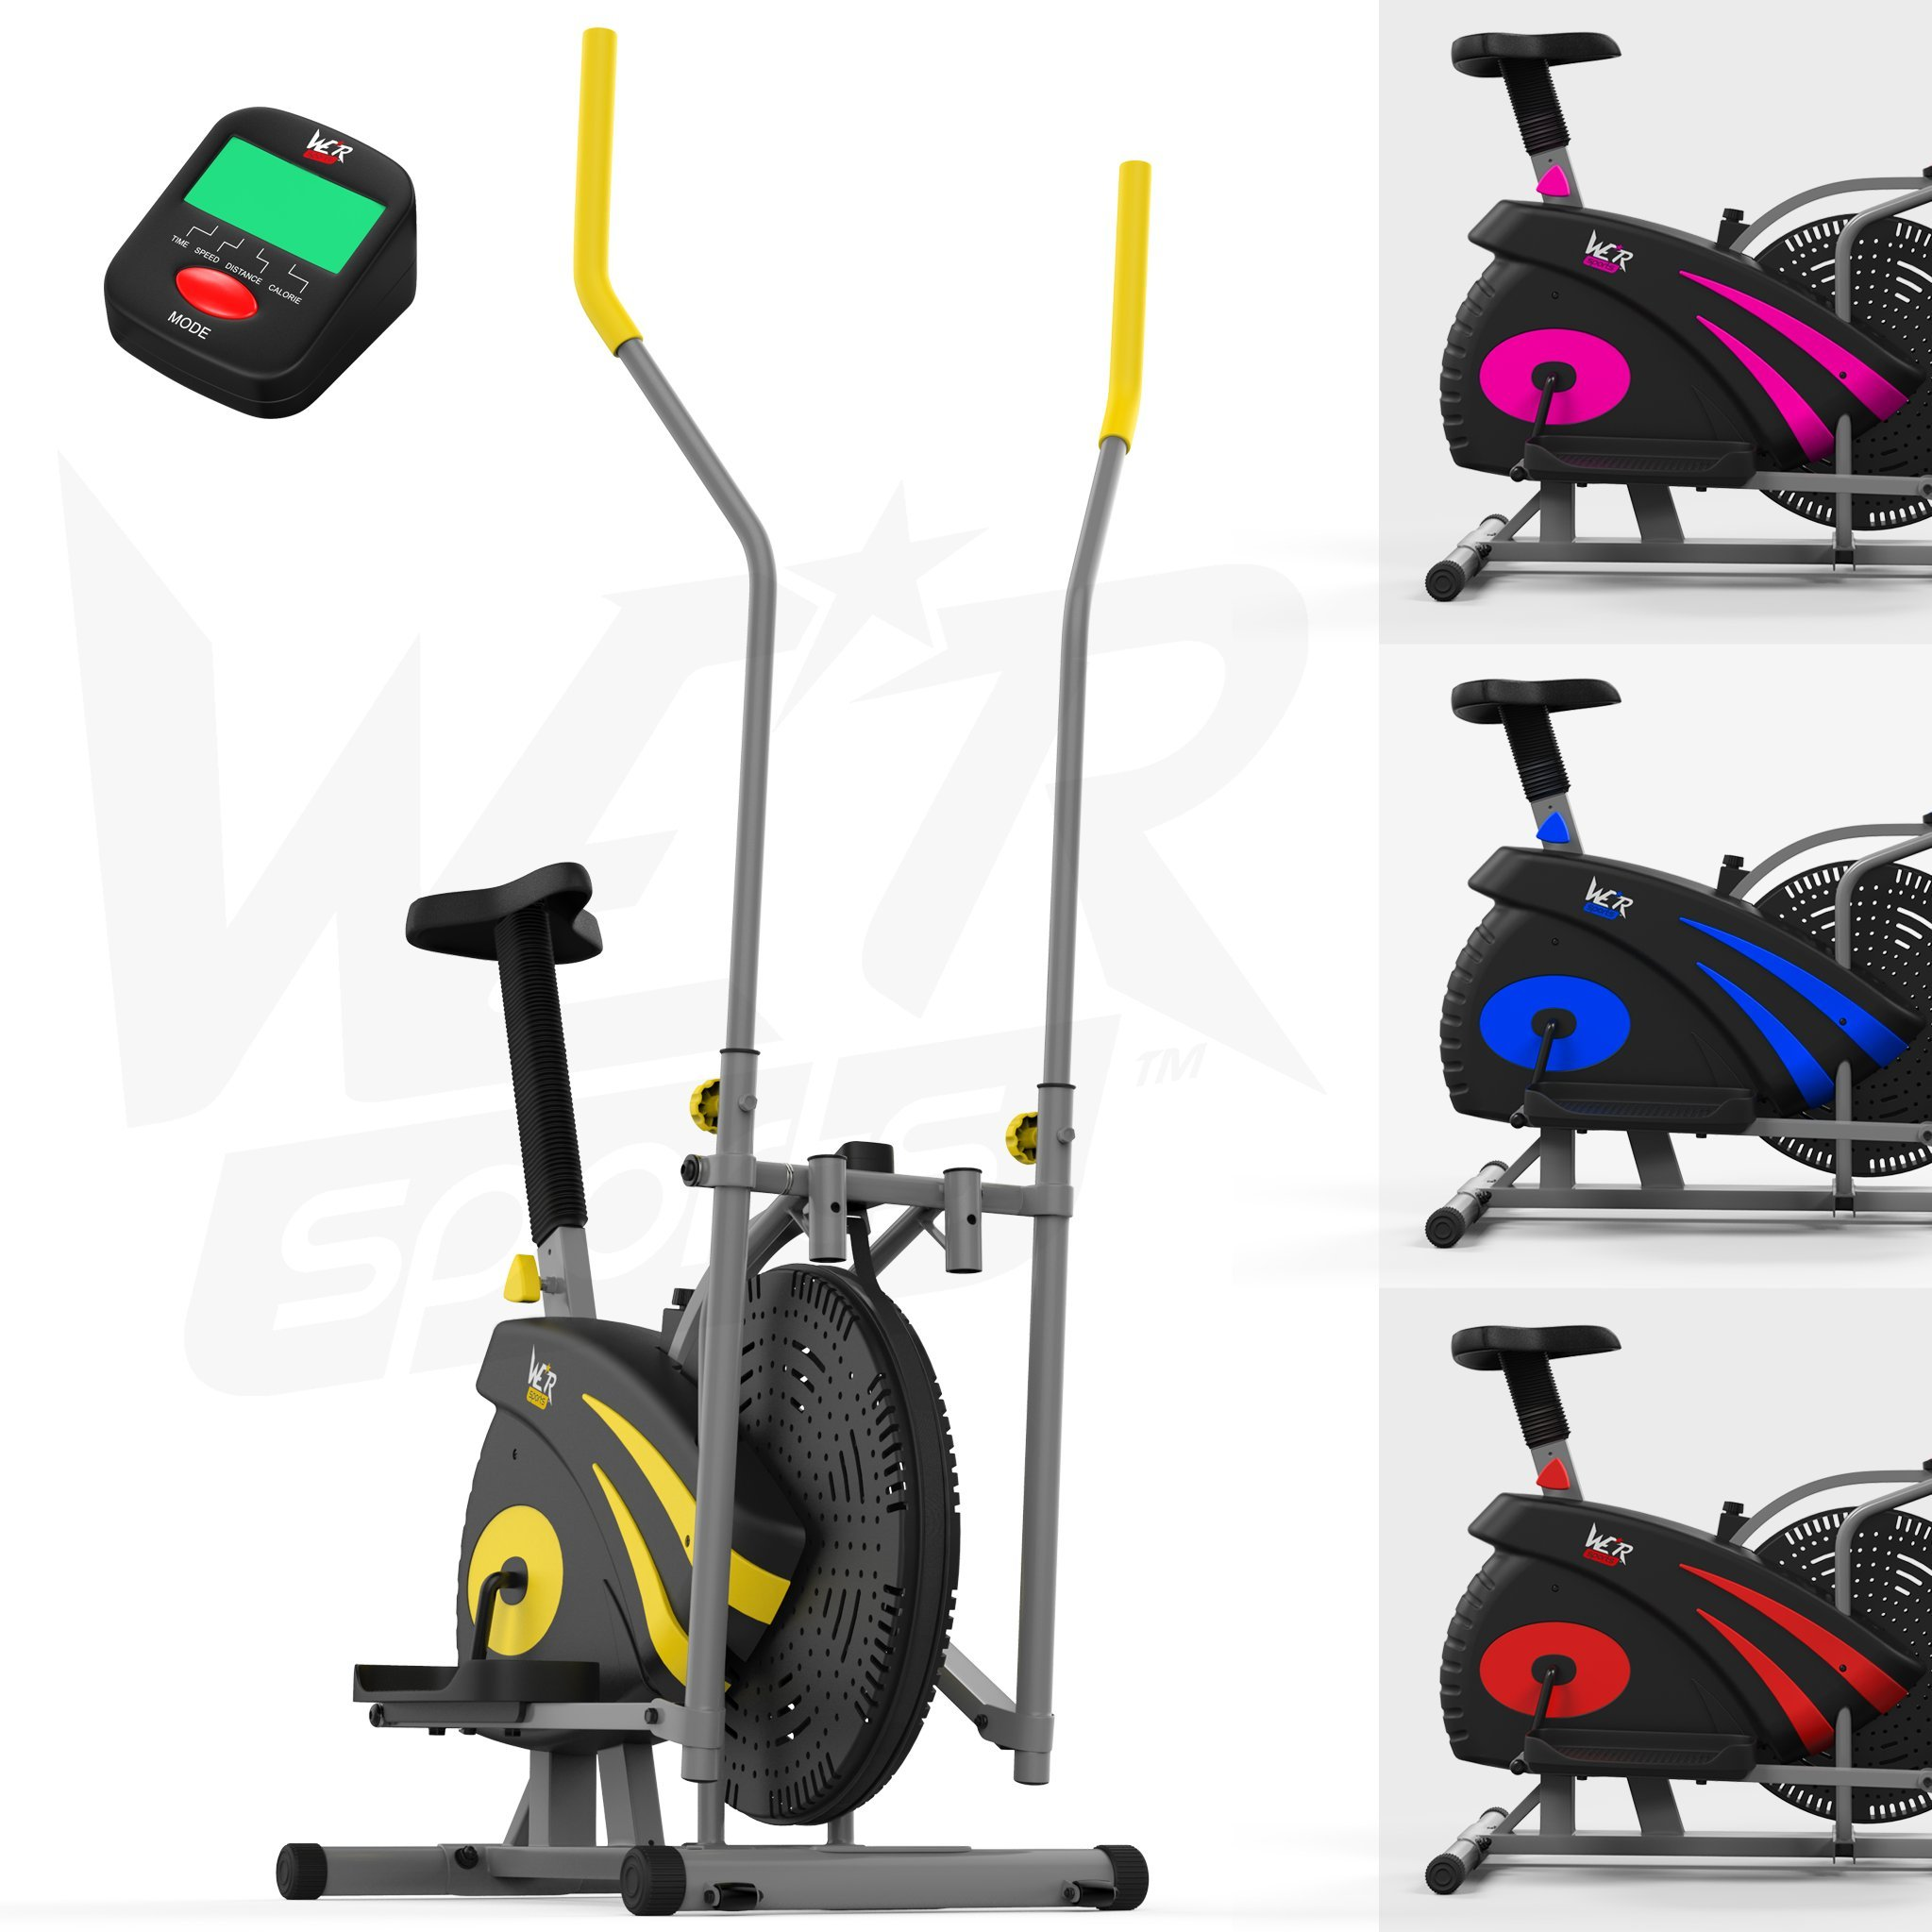 We R Sports 2-en-1 Elliptique Traverser Entraîneur & Exercice Vélo Intérieur Maison Aptitude Cardio Faire Du Sport Machine product image